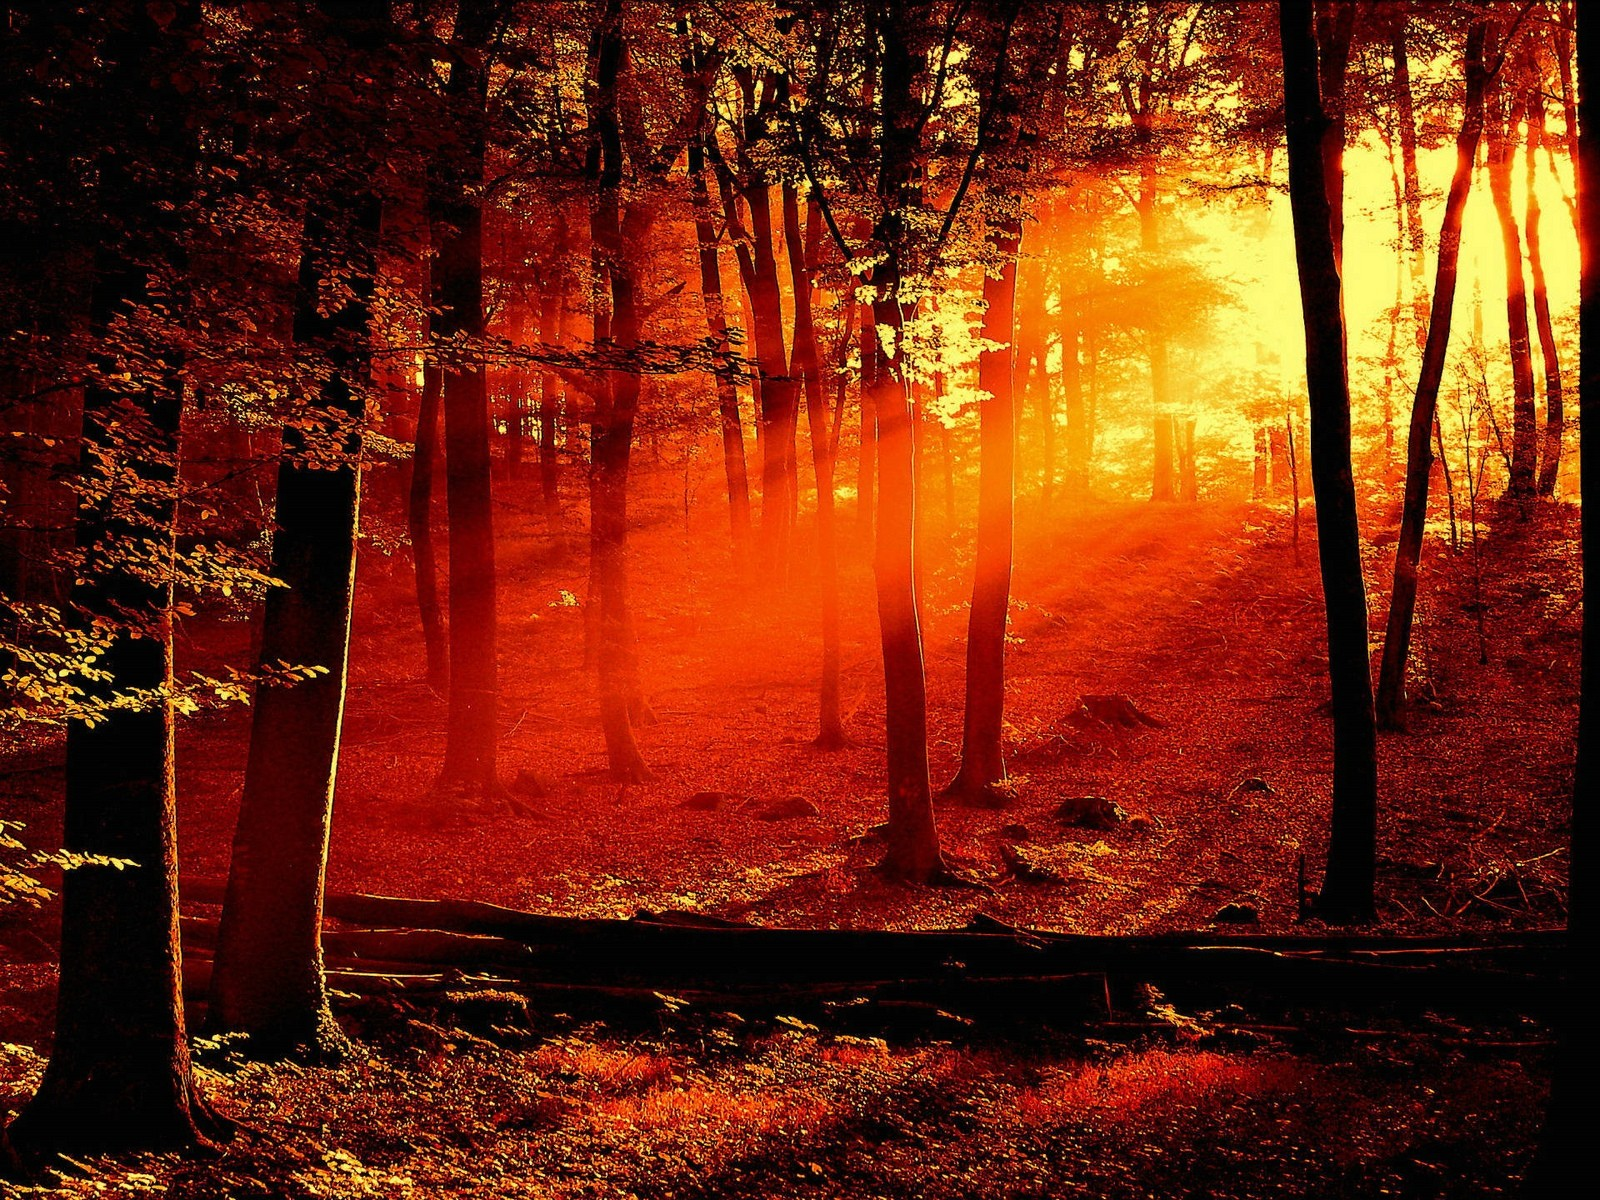 http://3.bp.blogspot.com/-glkpP7AnQWU/UEFviQqIyyI/AAAAAAAAF1c/X4vh7ZZt7fI/s1600/Red+Light+Sunset+in+Forest.jpg